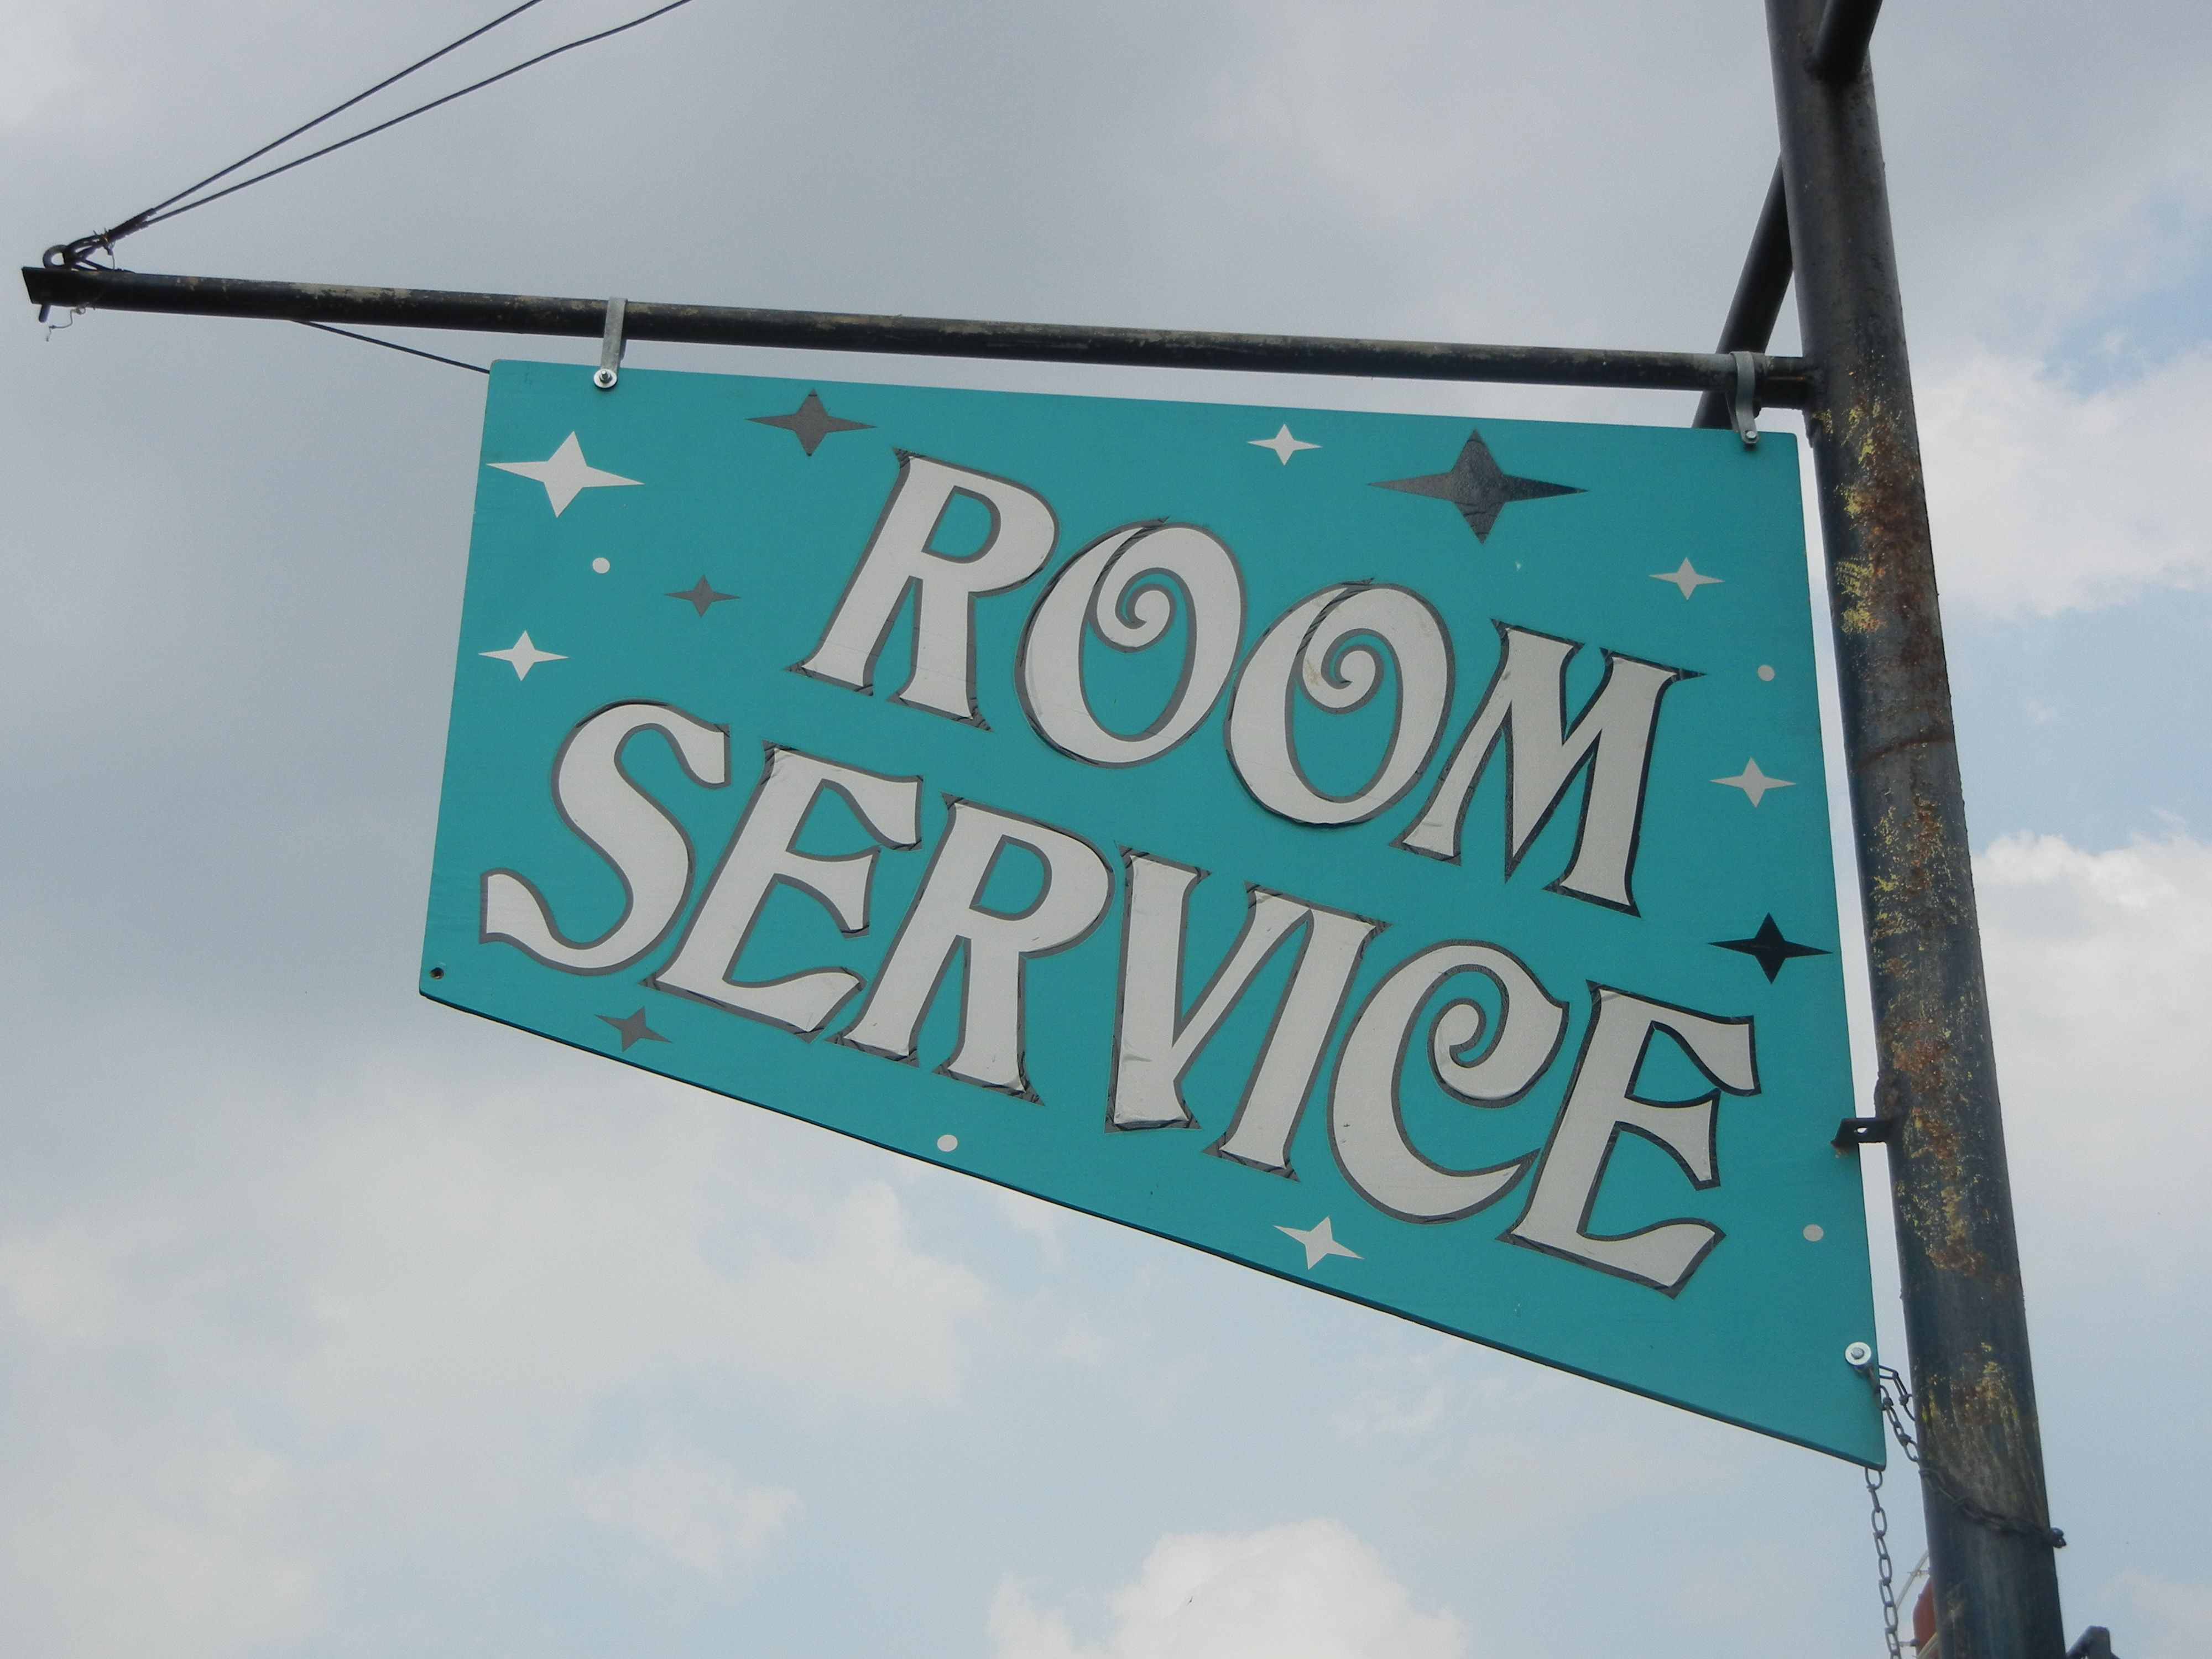 Room Service, Austin, Texas  Sign Language 2  Pinterest. What Is Termite Inspection Heat Pump Seattle. Sync Time To Domain Controller. Organic Mattress San Francisco. How To Get Insurance Cheaper Send It Again. Health Care Reform Calculator. Northeastern Wisconsin Technical College. Pacific Rim Orthopedic Surgeons. Social Security Tucson Az Movies Henderson Nc